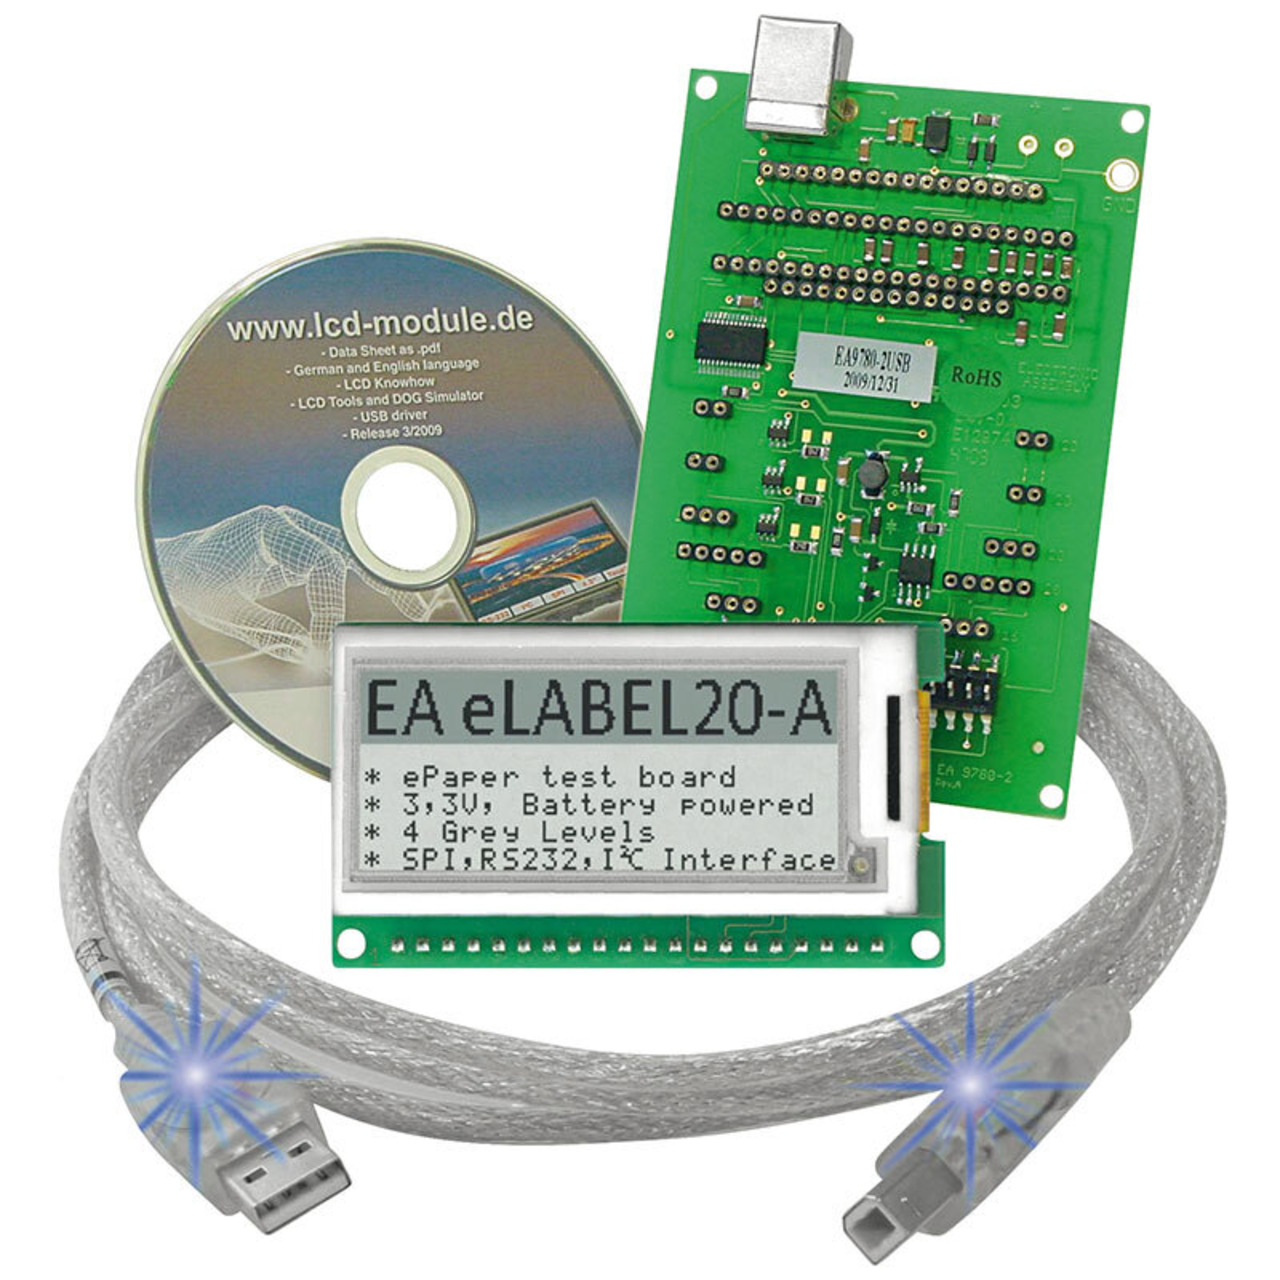 Electronic Assembly ePaper Display EA EVALEPA20-A- 172 x 72 Pixel- mit Ansteuerung und USB-Interface